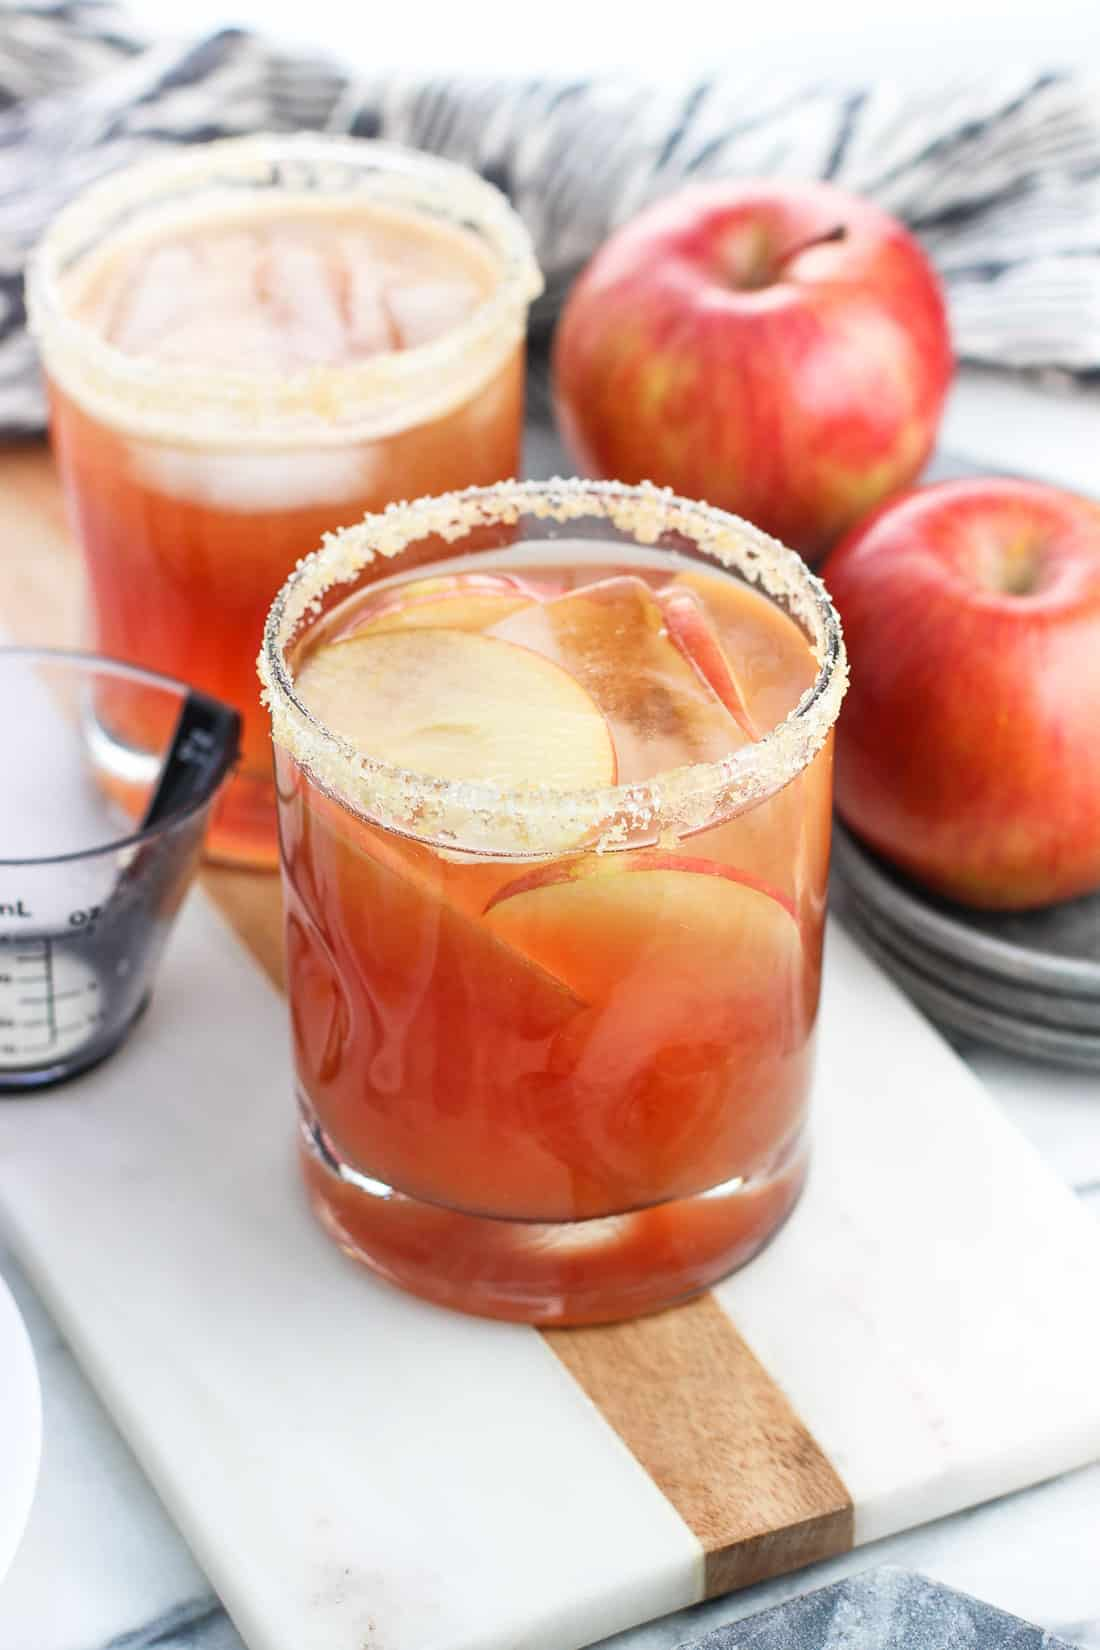 This easy cranberry apple margarita recipe is a crowd pleaser! Cranberry juice and apple cider join tequila and a splash of orange juice for a tart, extra fruity spin on a cocktail classic with a golden sugar rim.